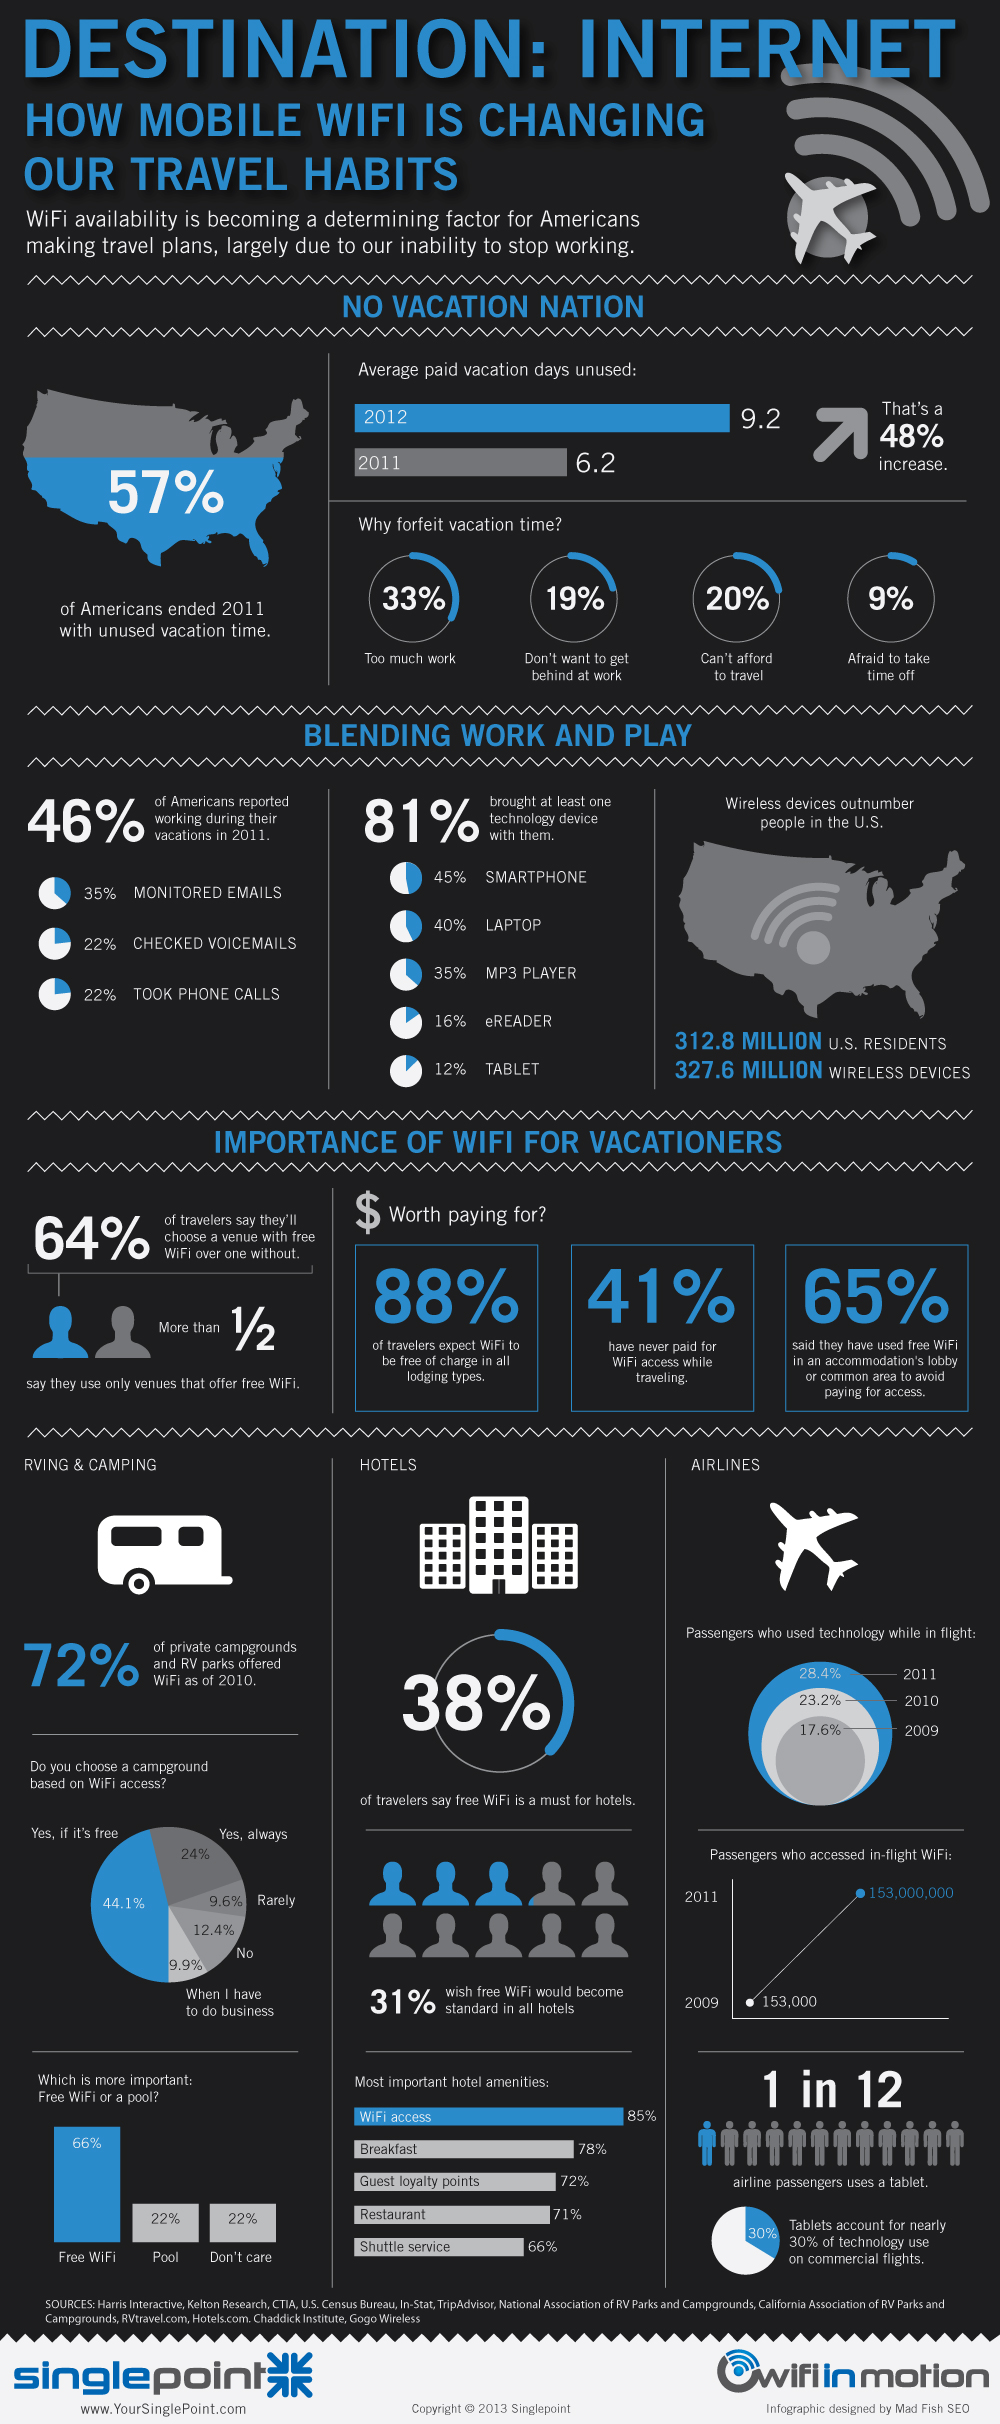 Destination Internet: How Mobile WiFi is Changing Our Travel Habits